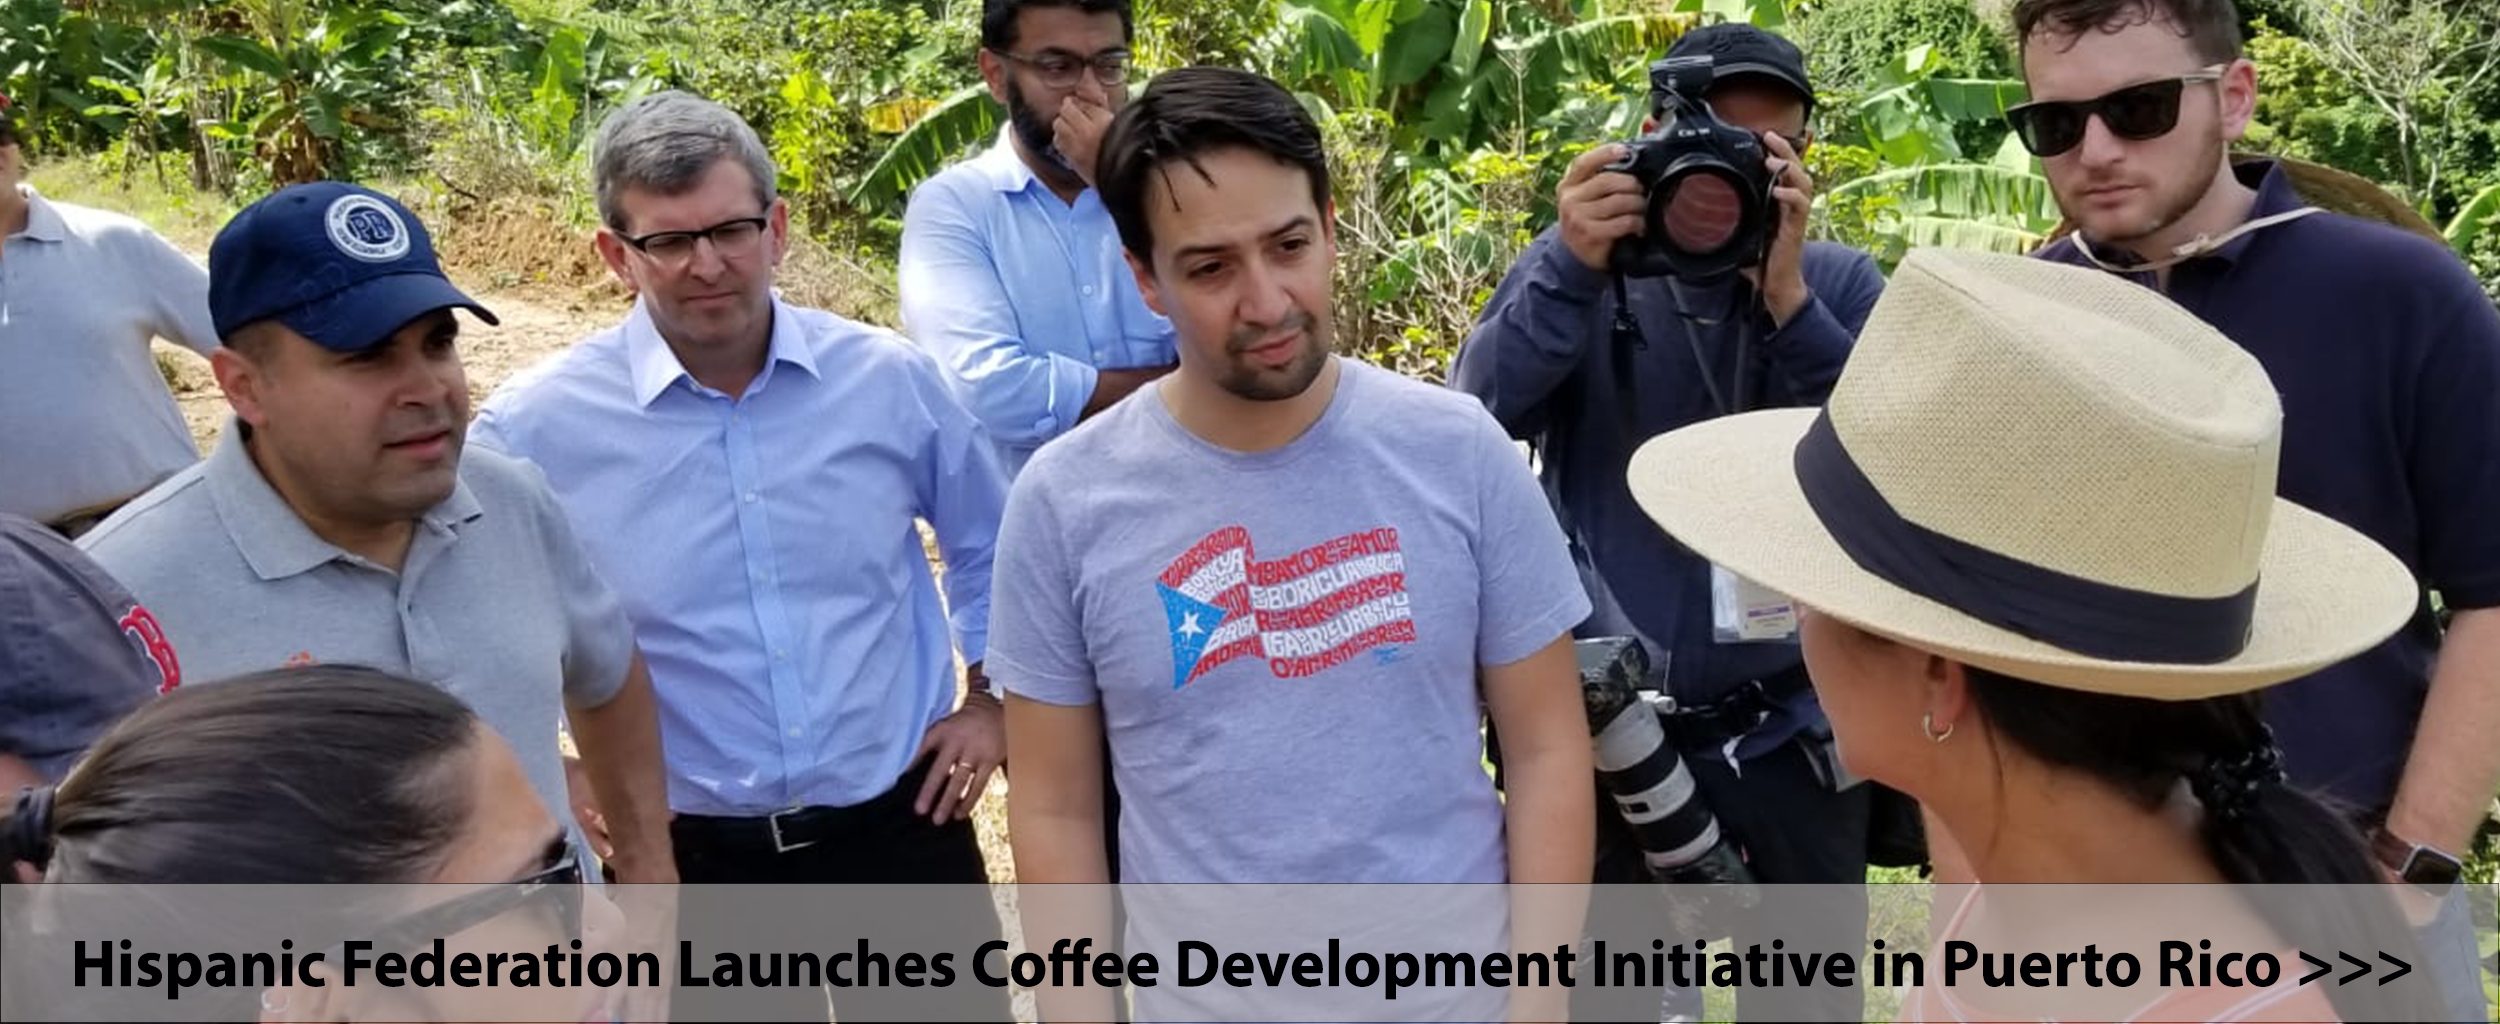 hfcoffee_unidoscarousel.png